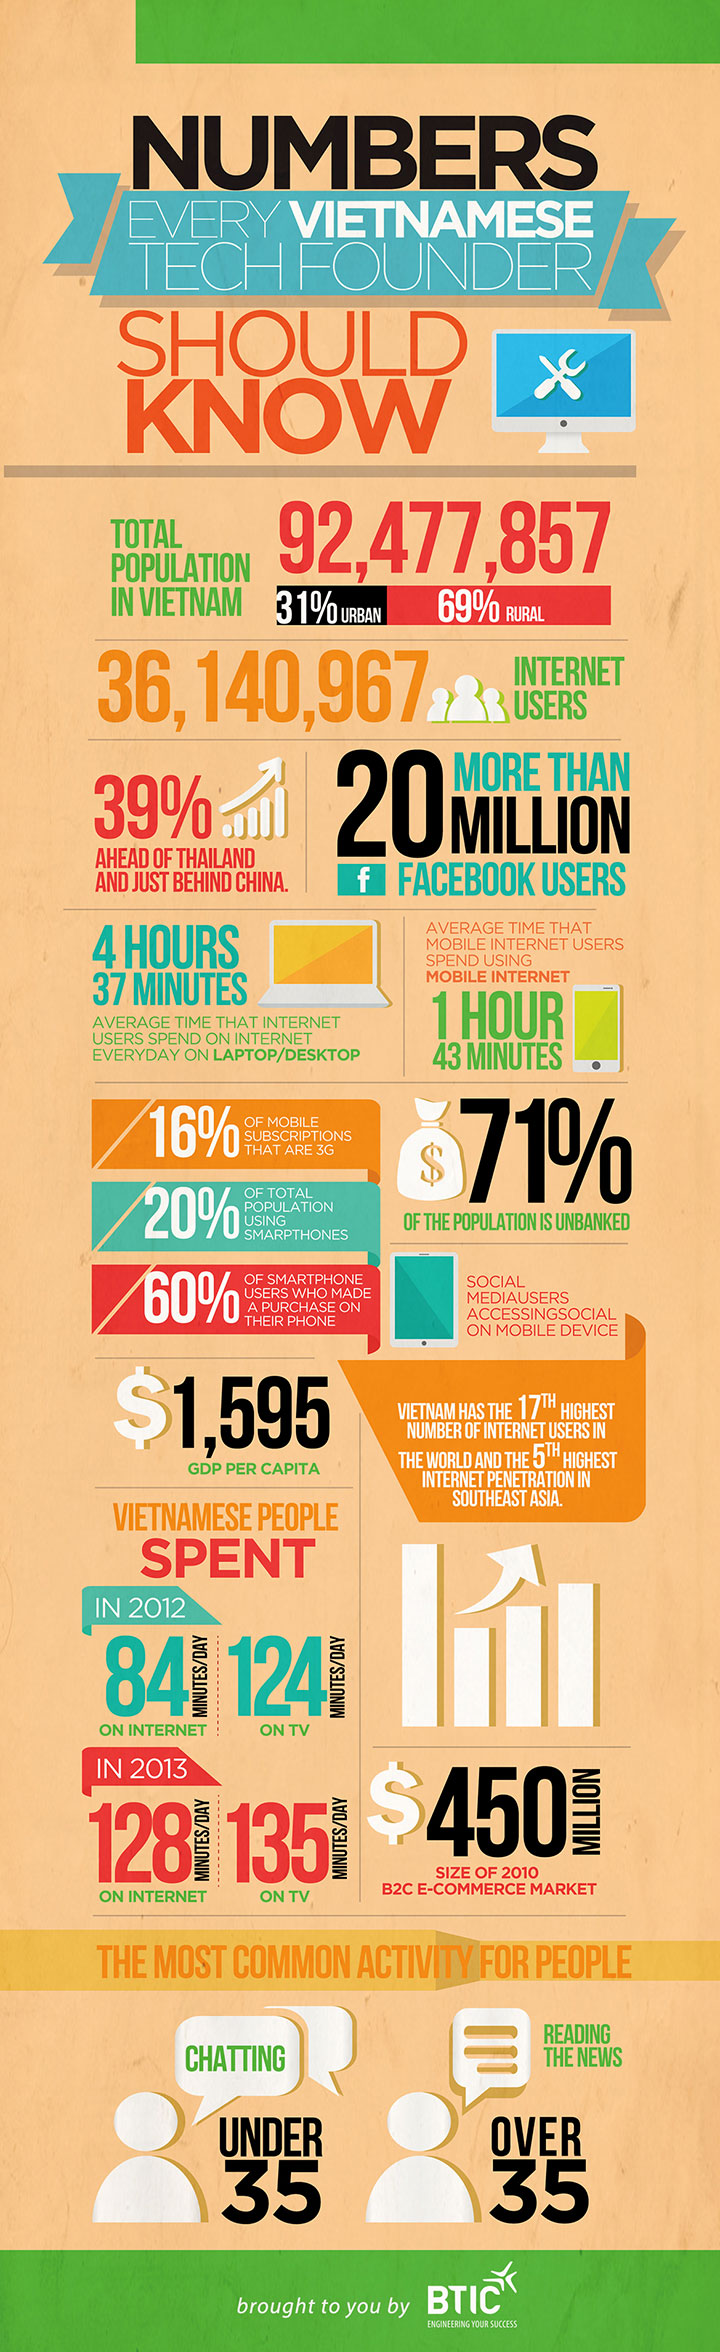 tech-founder-vietnam-infographic